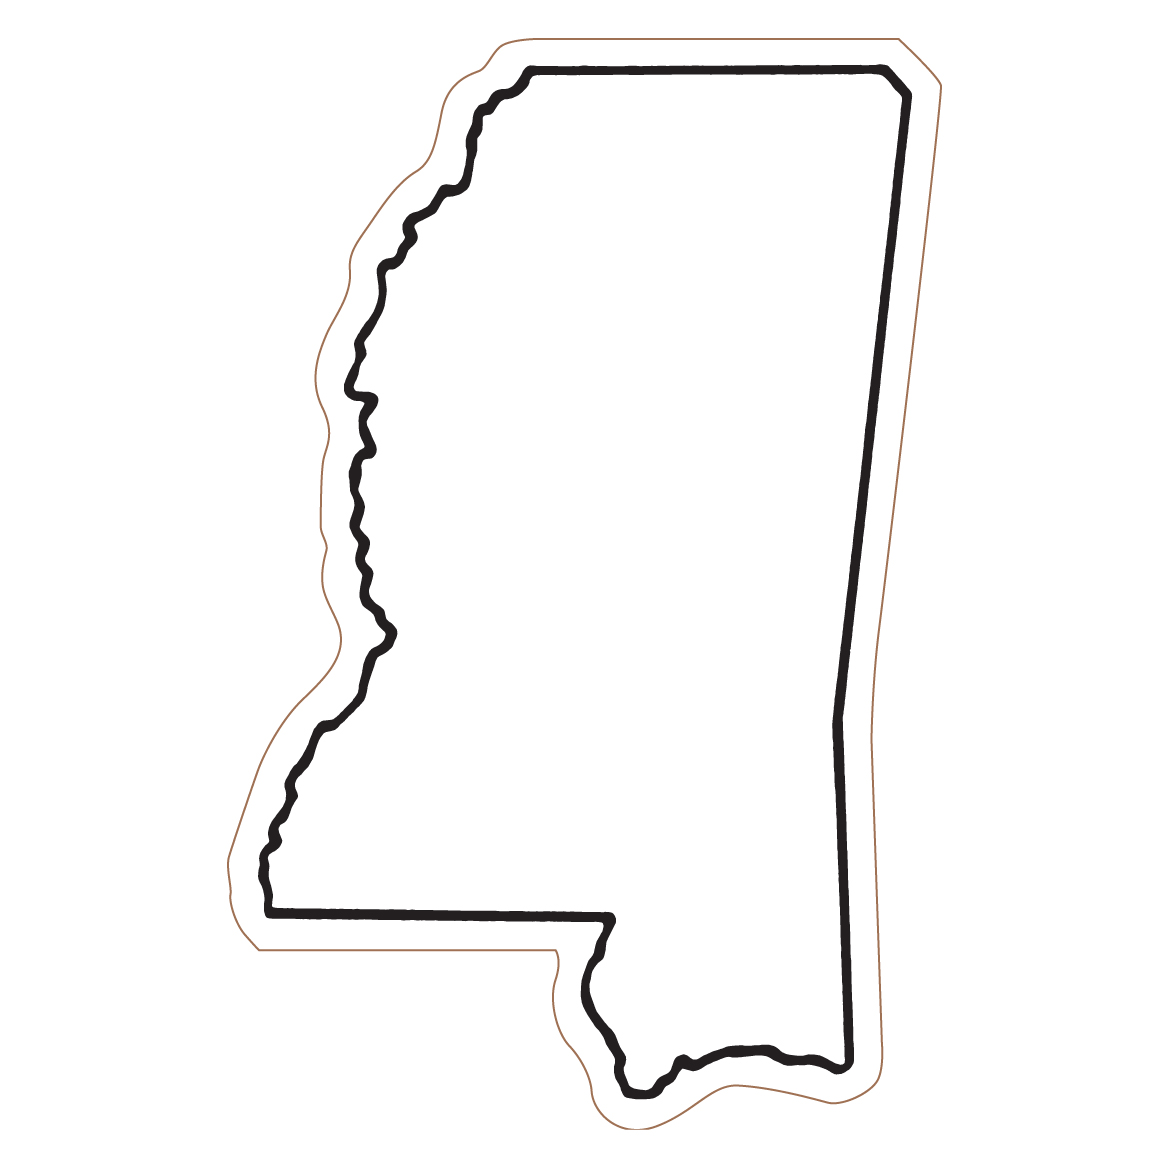 State Outline Clipart